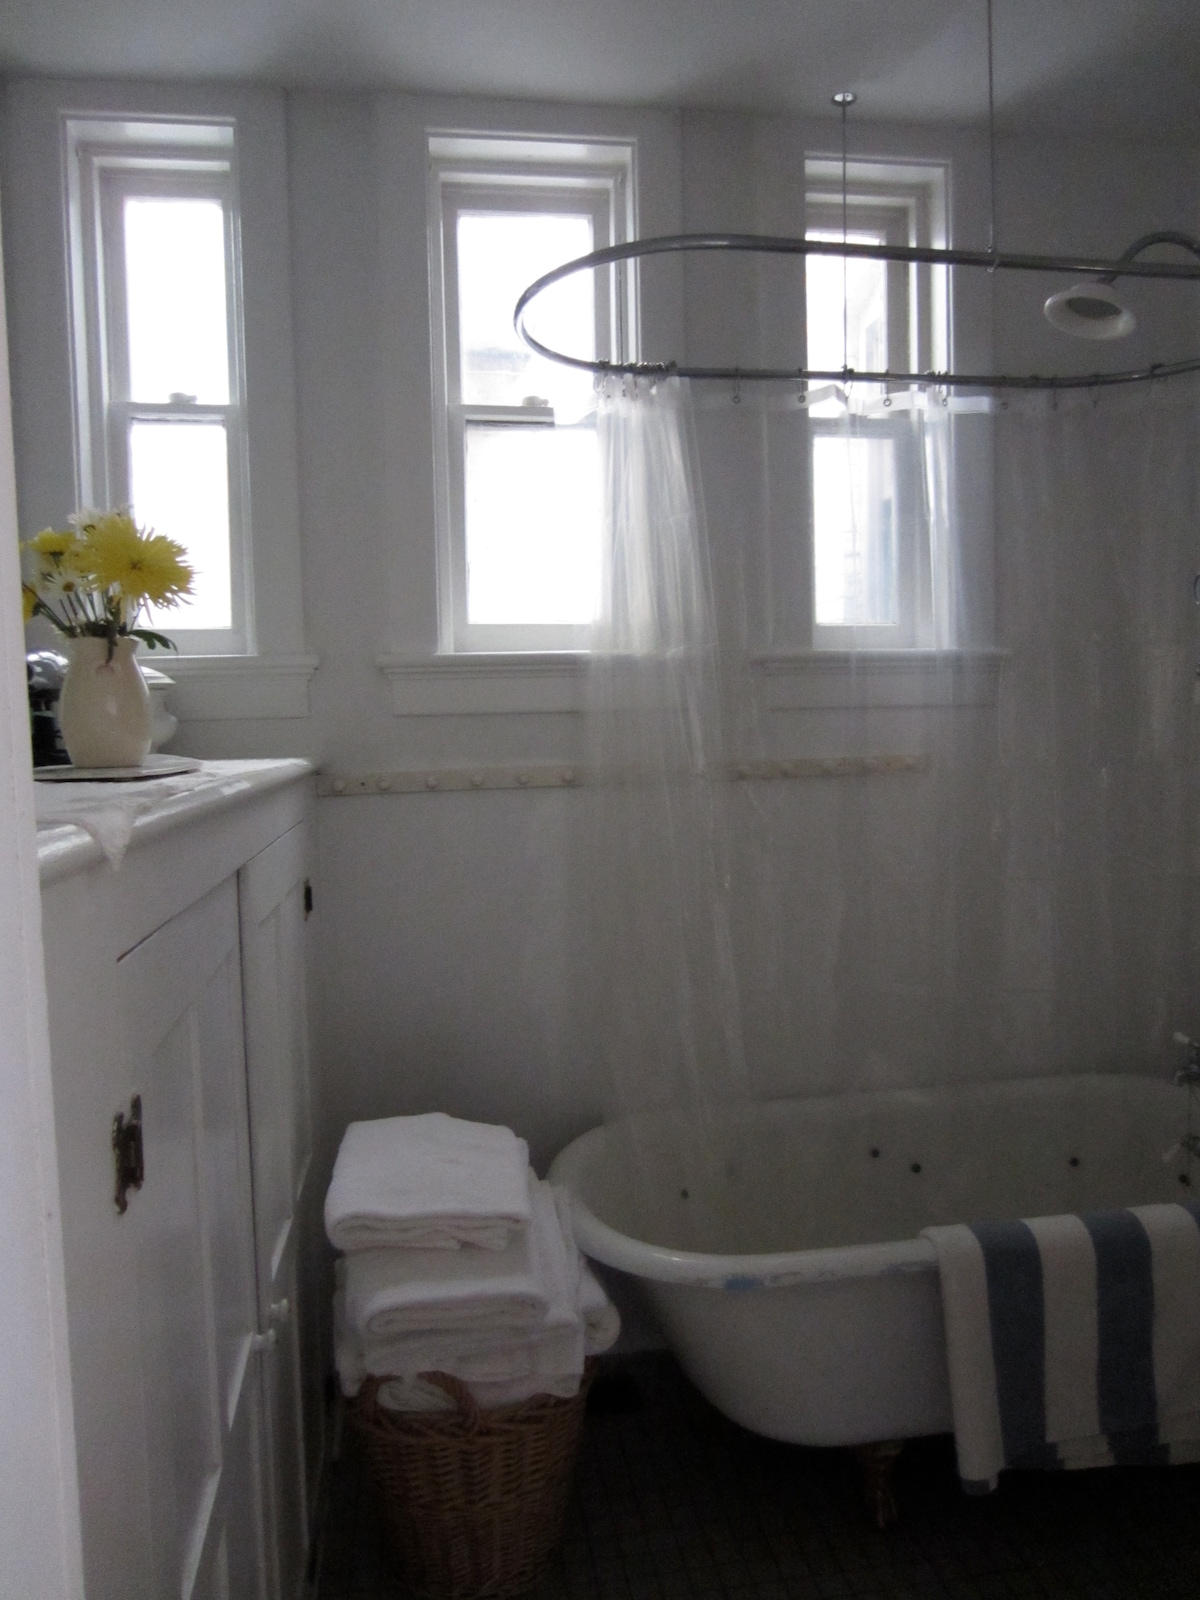 The traditional bathroom with old fashioned cupboards, clawfoot tub-shower are located just downstairs.